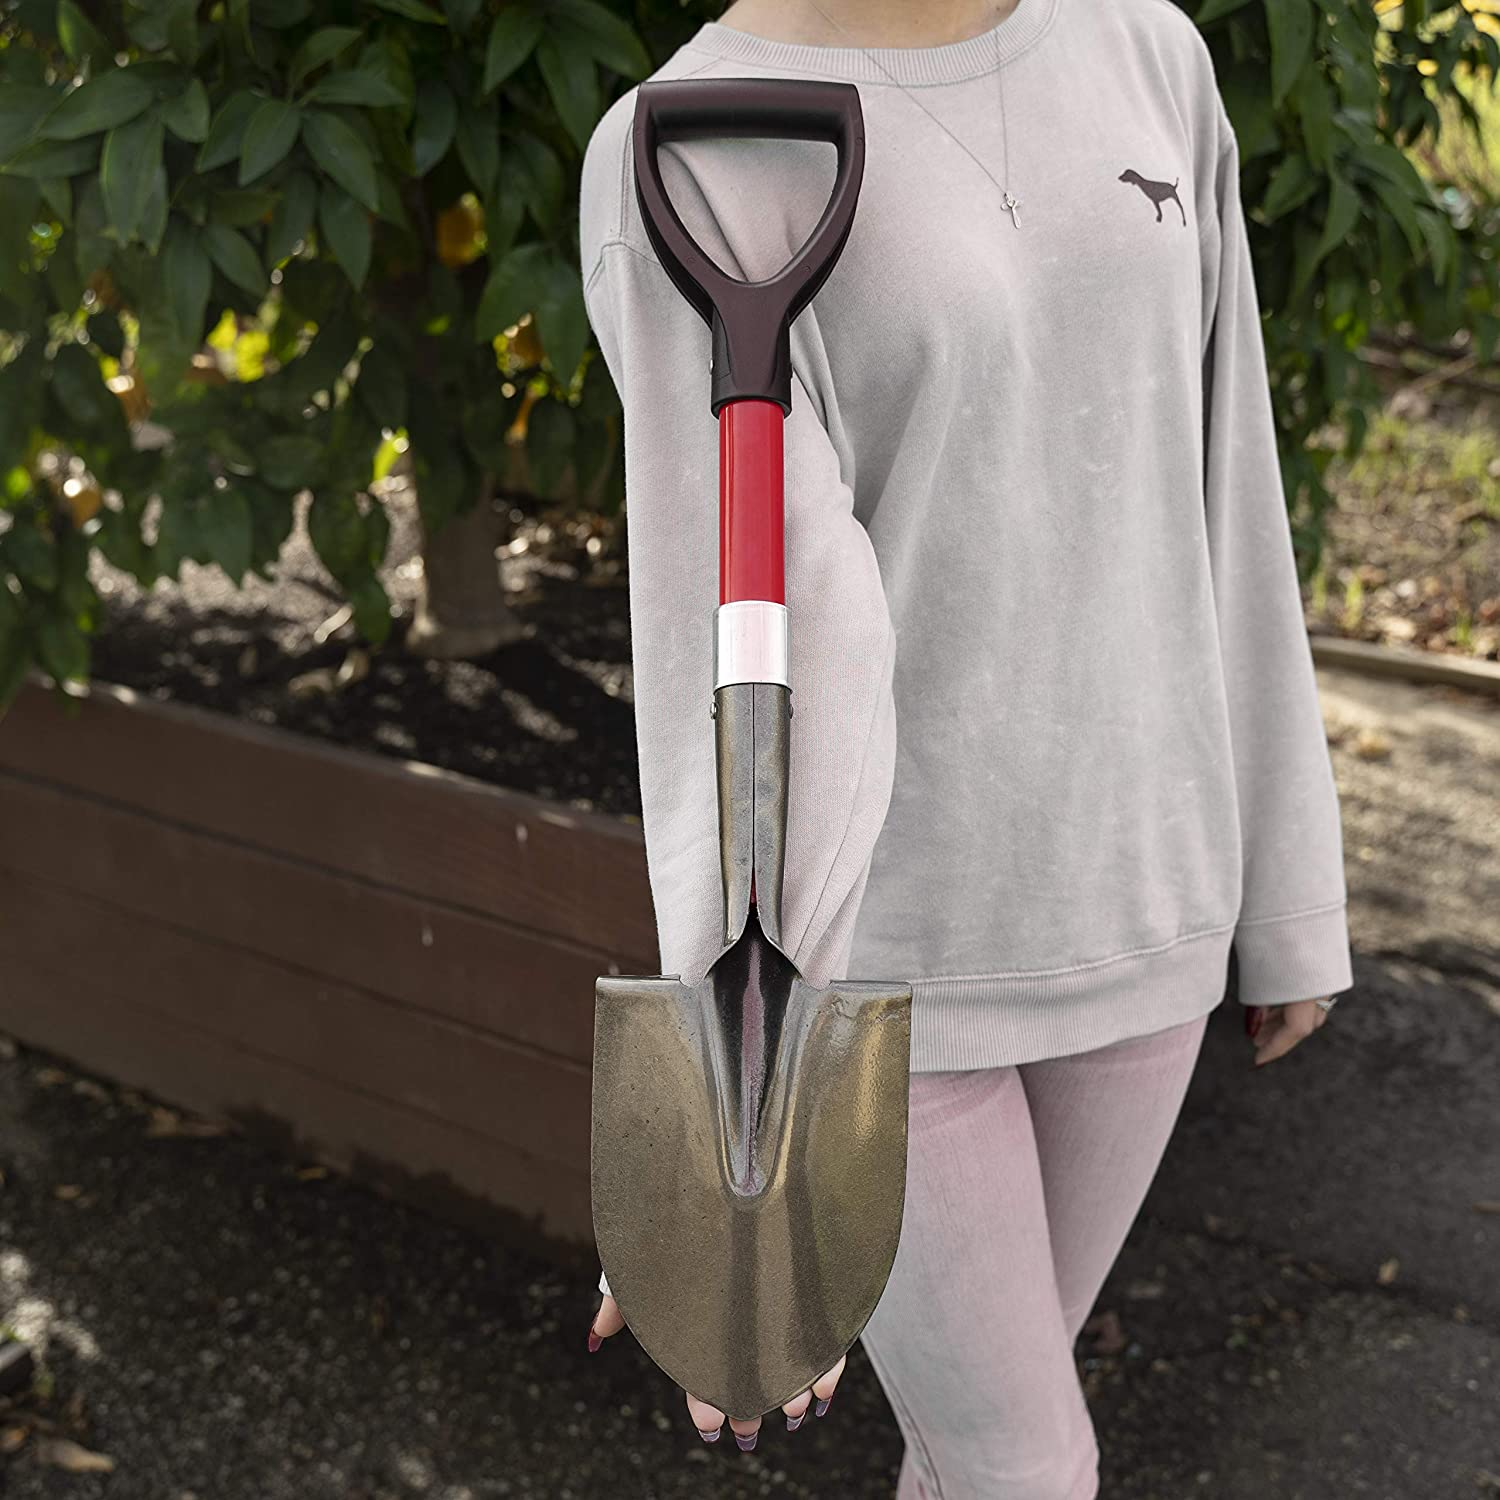 Best Shovel for Digging Reviews and Buying Guide for 2021